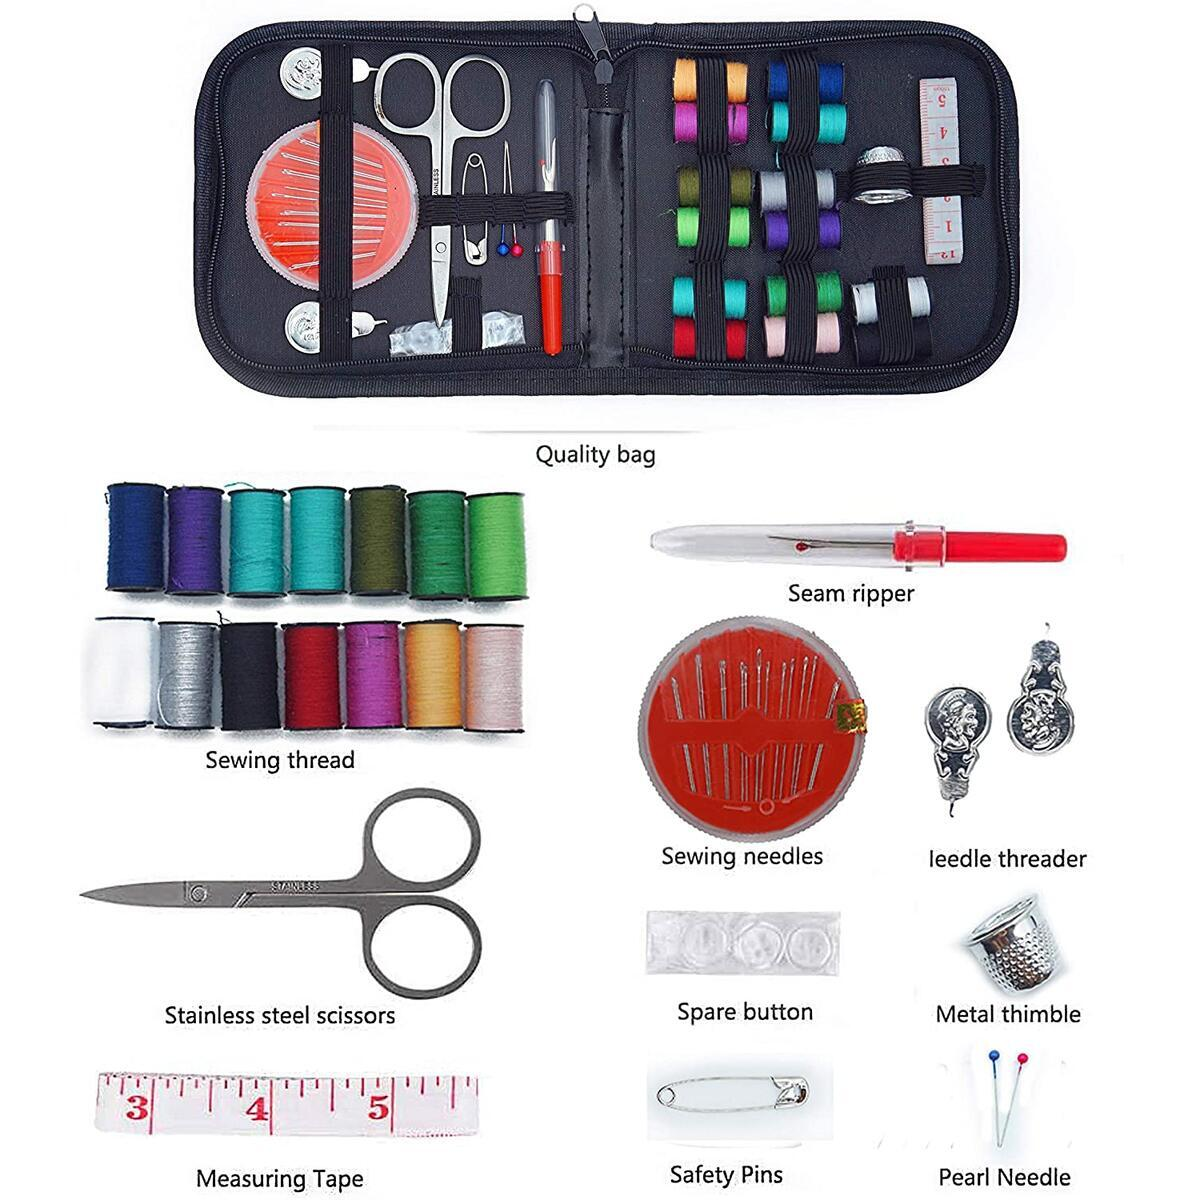 Mini Sewing Machine,Battery & AC Power,Portable Sewing Machines 2-speed with extension sewing table & Sewing Kit for Household.Easy home small、Light sewing machine for Travel, Kids, Beginners